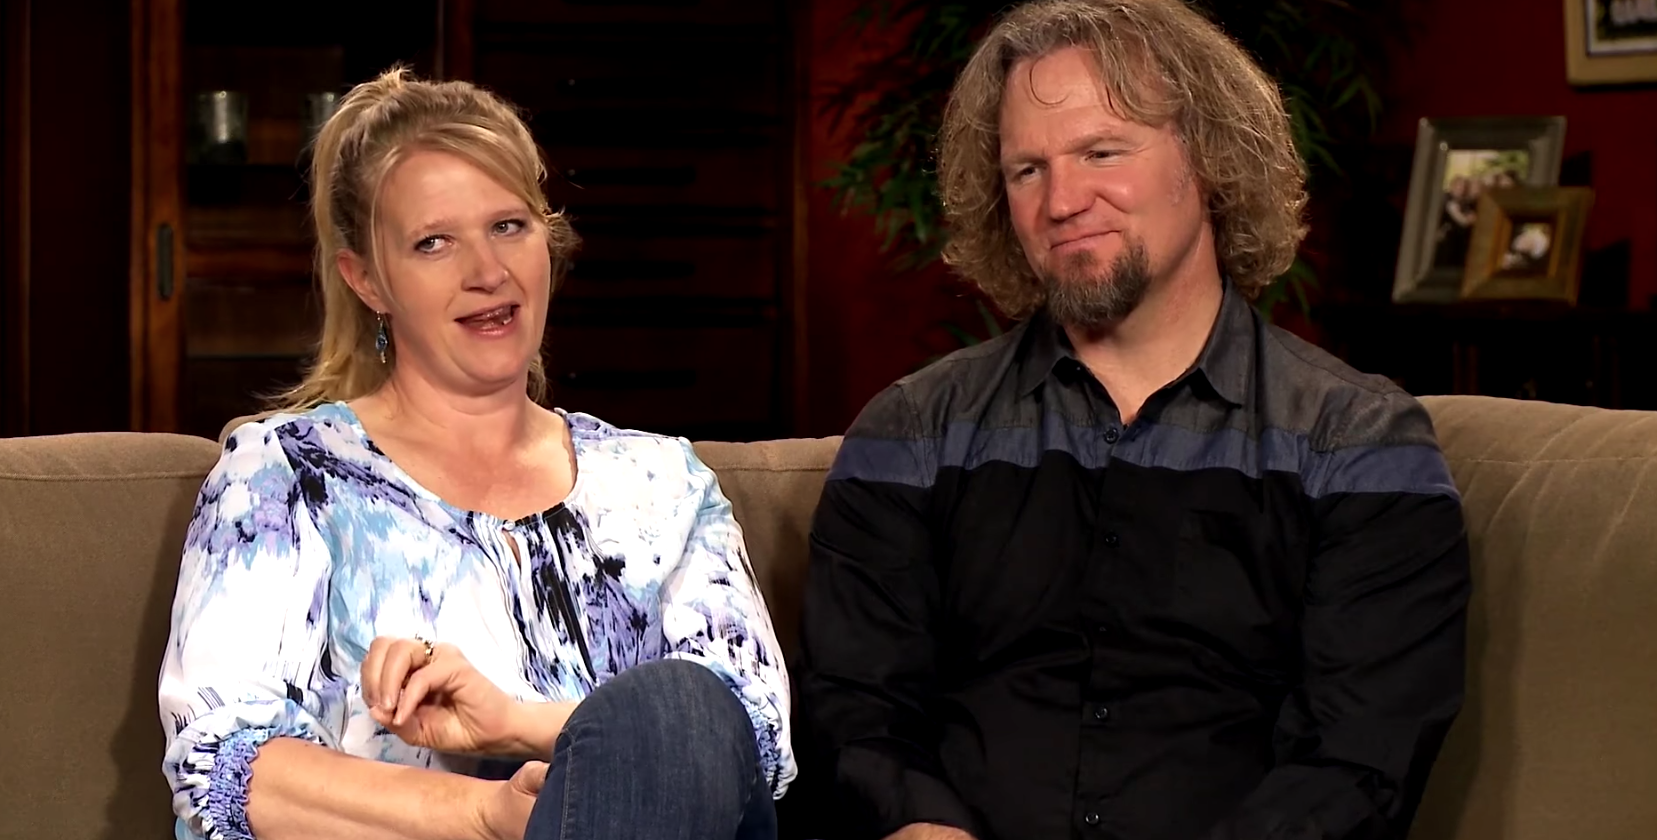 Christine and Kody Brown on 'Sister Wives'